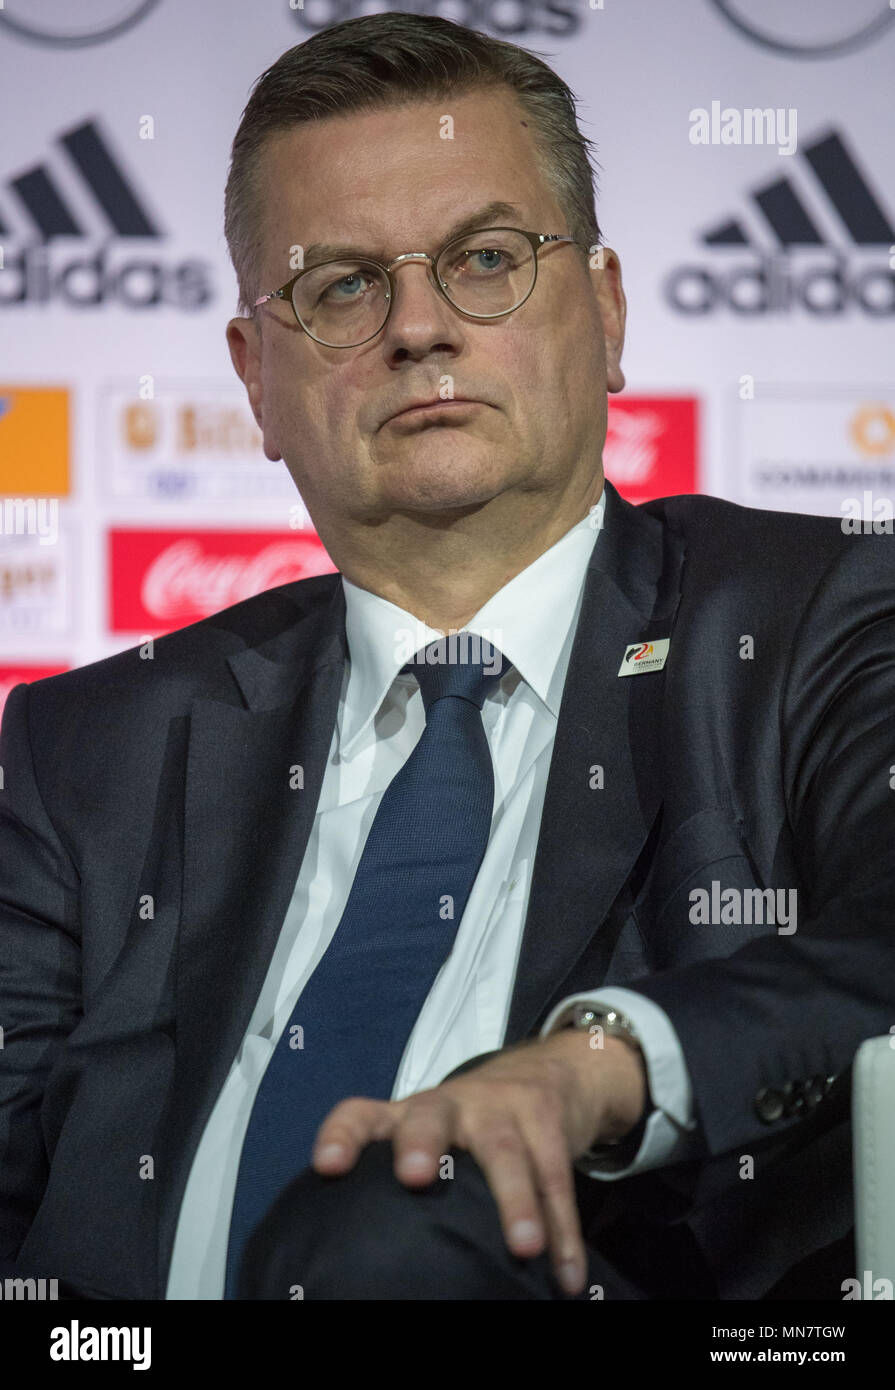 15 May 2018, Germany, Dortmund: soccer, World Cup, German national team, announcement of the preliminary World Cup squad of the German national team for the World Cup in Russia: President of the German Football Association (DFB), Reinhard Grindel, attending the press conference. Photo: Federico Gambarini/dpa Credit: dpa picture alliance/Alamy Live News - Stock Image